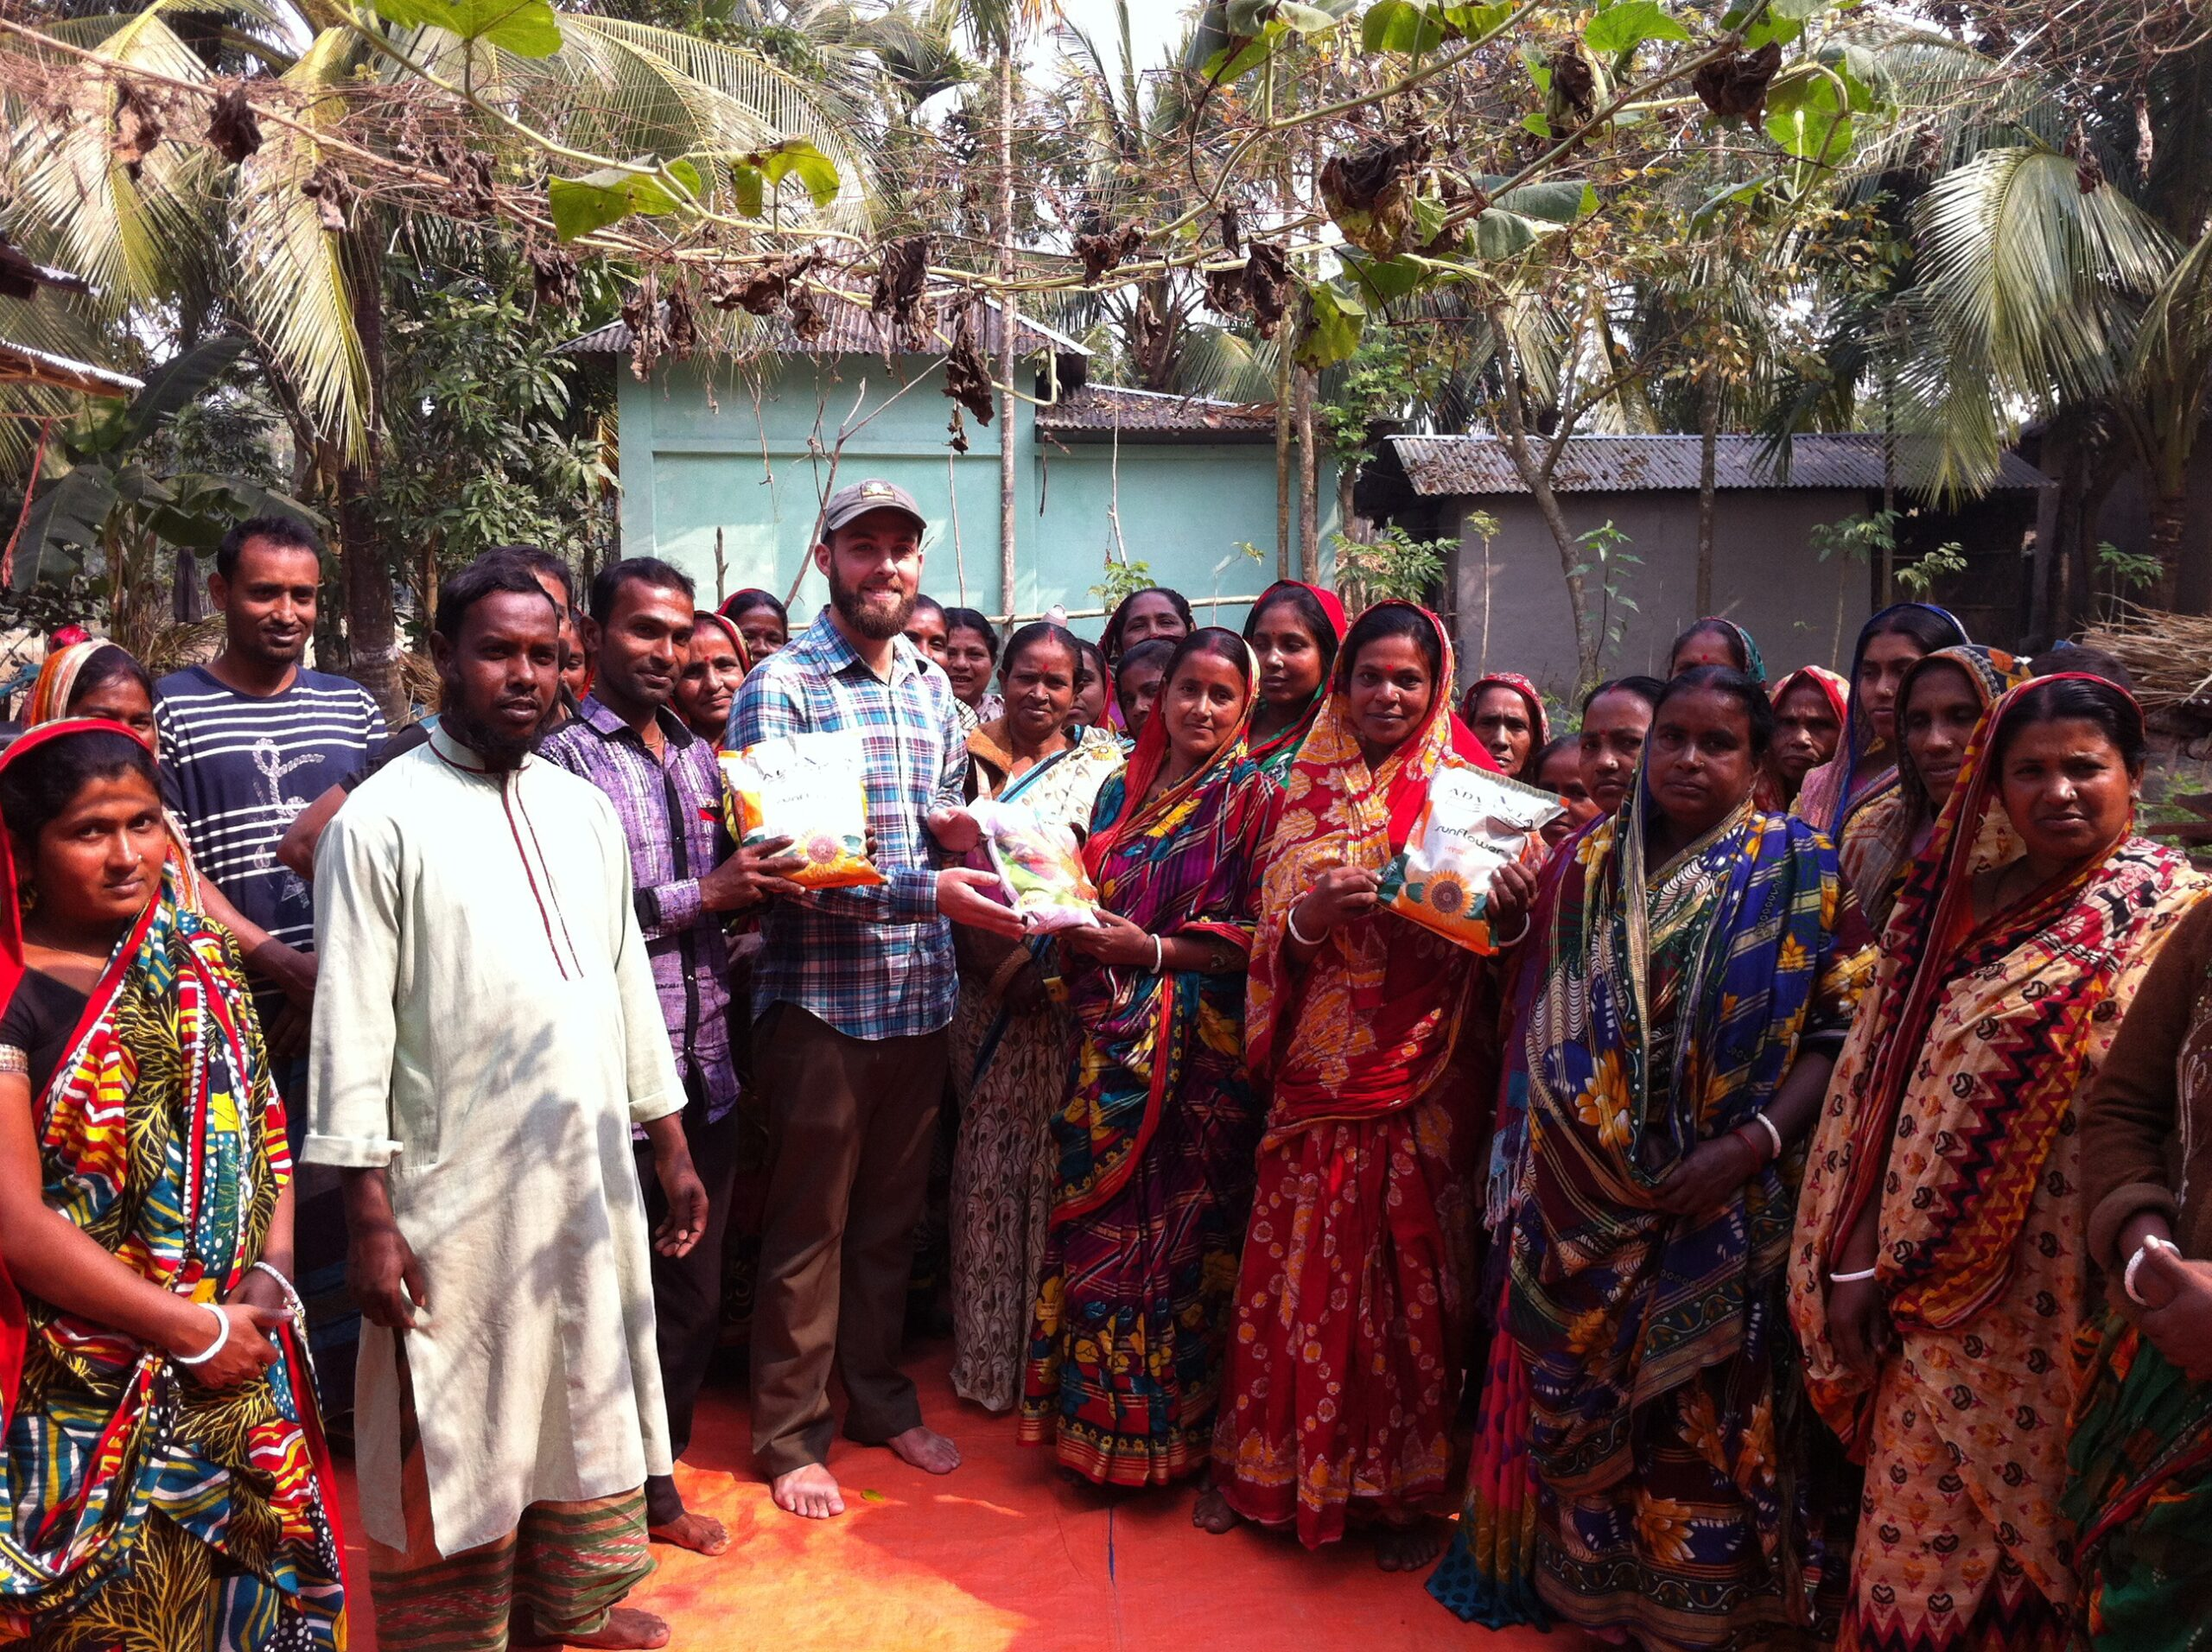 Aaron shew with crowd in Bangladesh